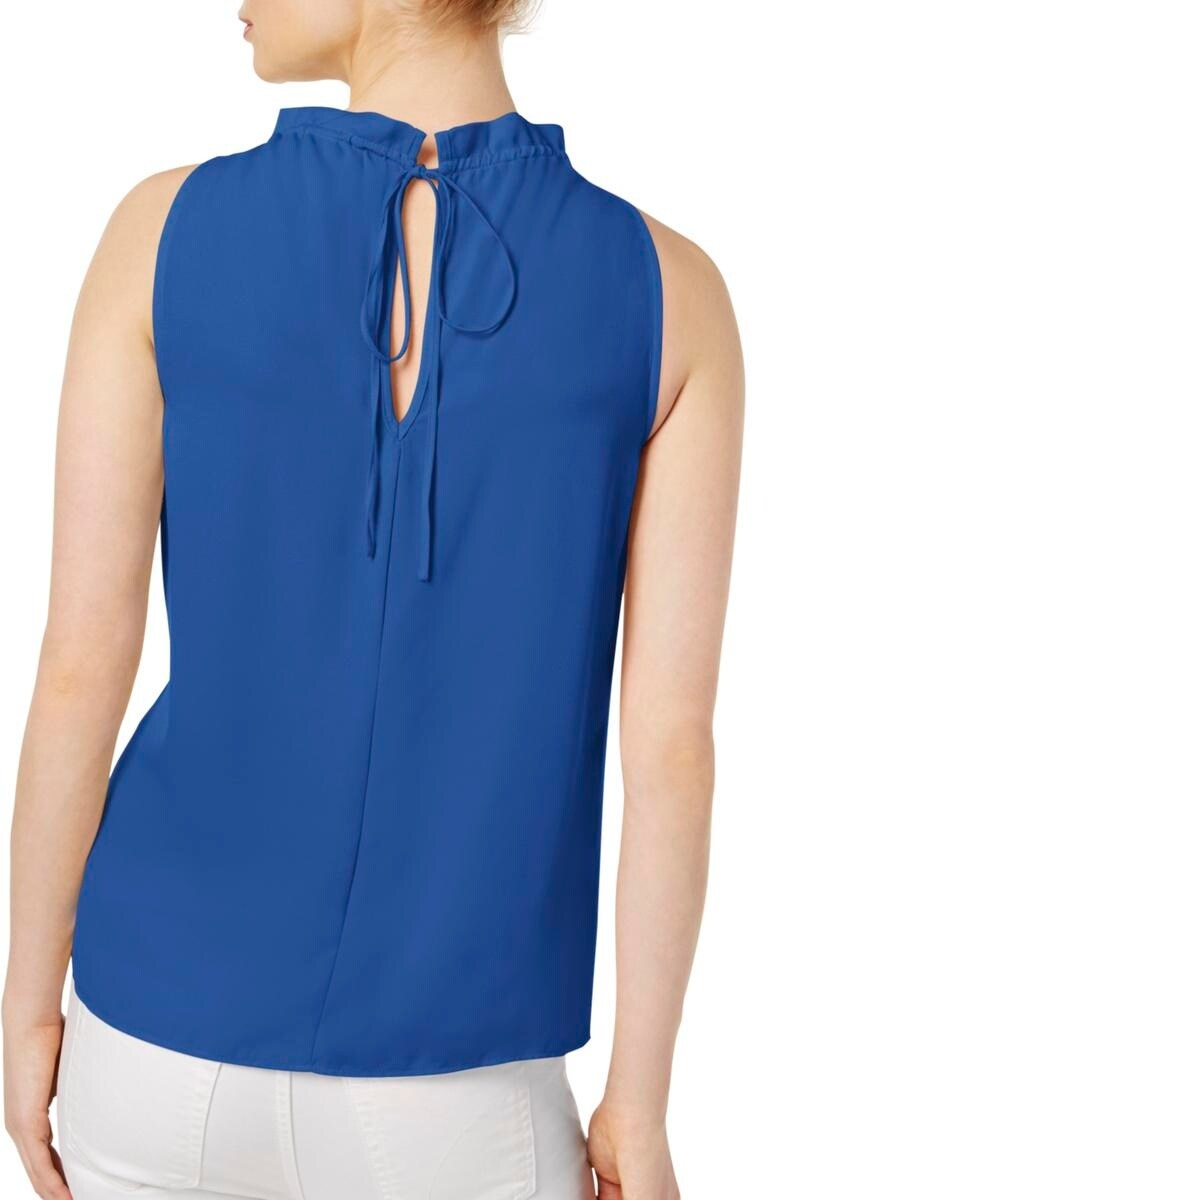 77e487ef9a3f2 Shop Kensie Womens Halter Top High-Neck Crepe - Free Shipping On Orders Over  $45 - Overstock - 20895606